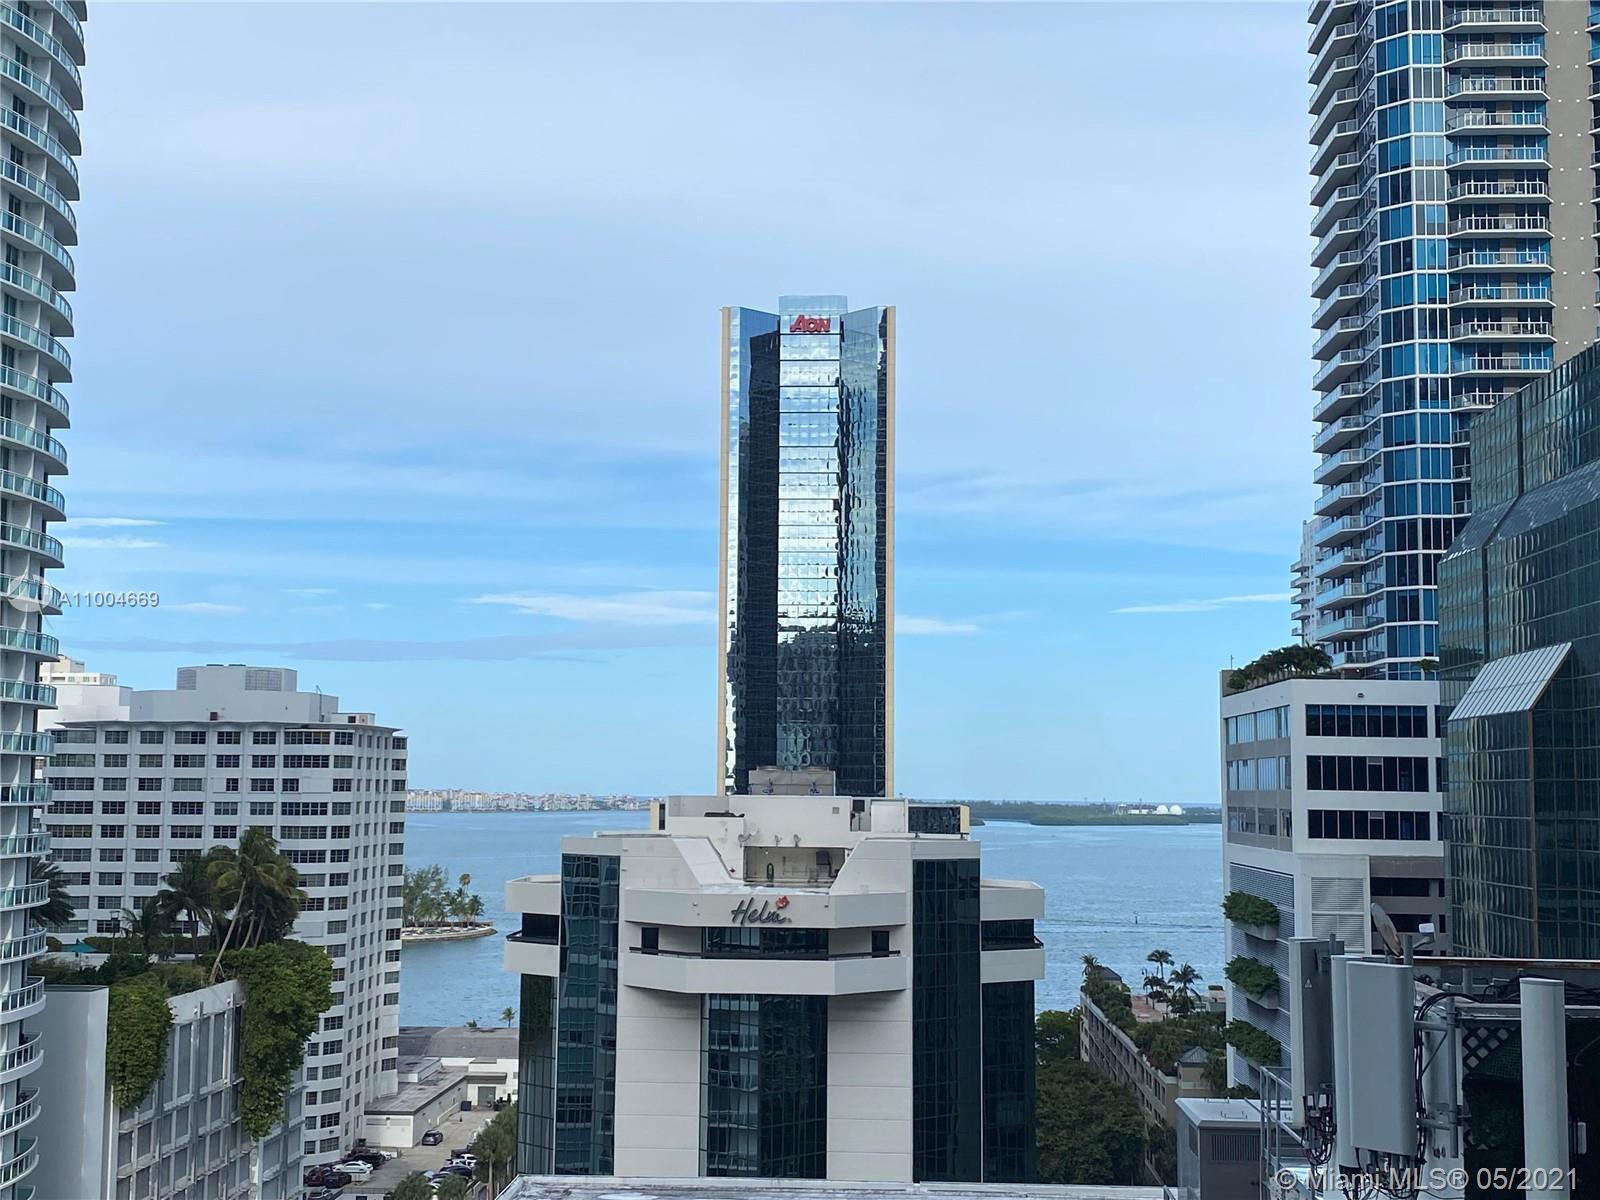 Beautiful condominium with amazing amenities, basketball court, racquetball, gym, indoor pool, rooftop pool, Gym, spa and much more, walking distance from Brickell City Centre. 2 garage spaces. Not showings allowed during the weekend.